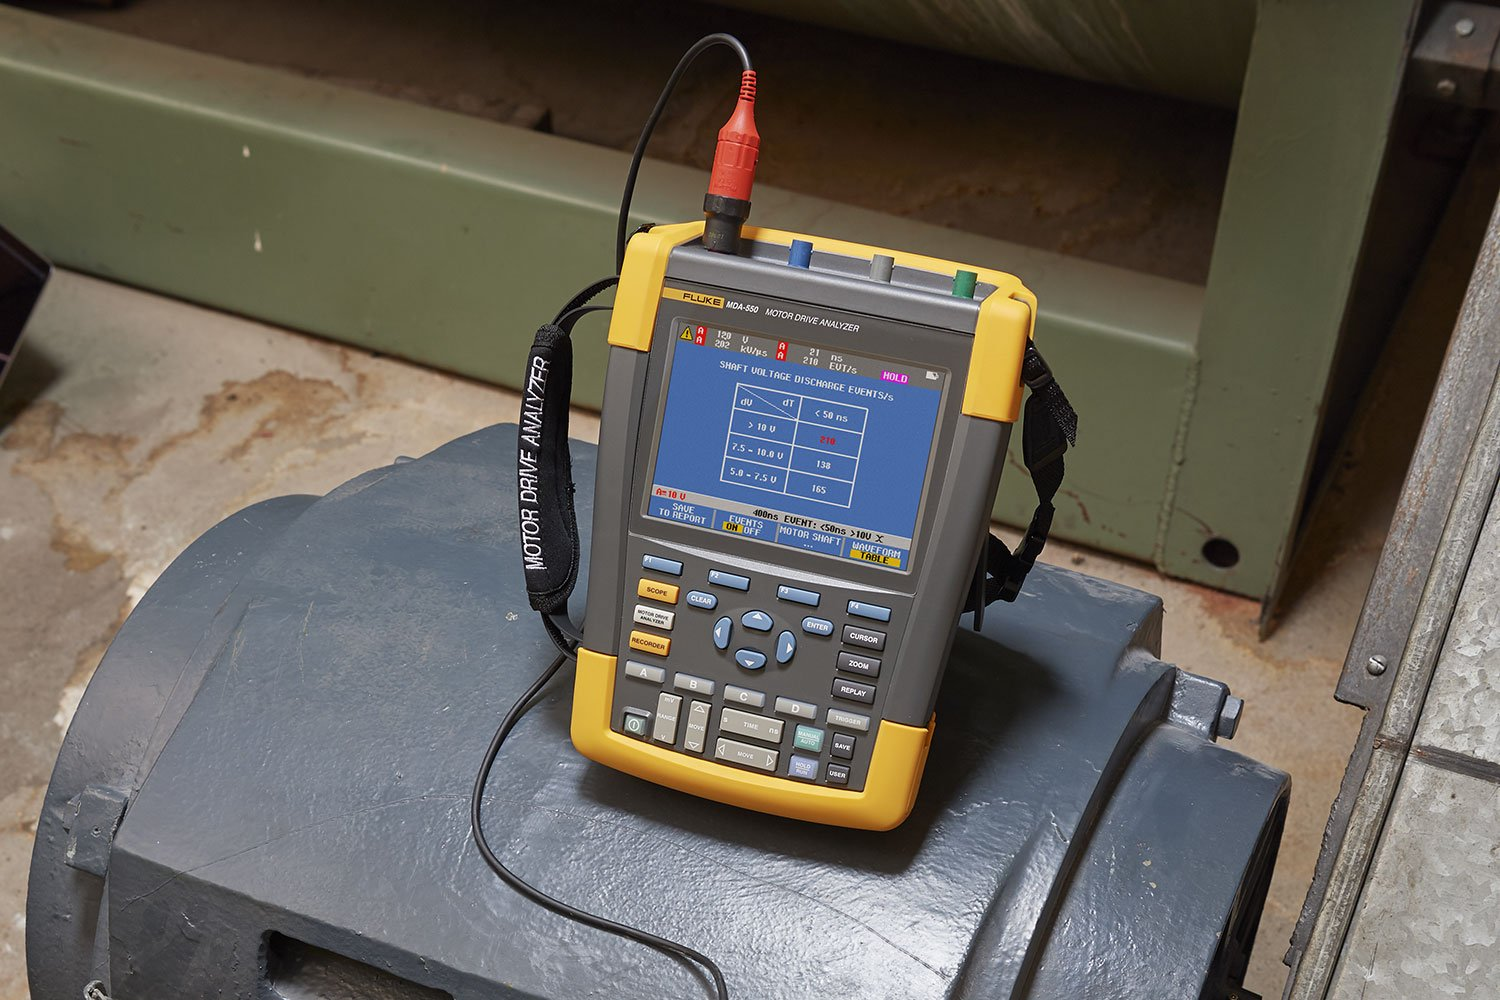 Making motor shaft voltage measurements with the MDA-550